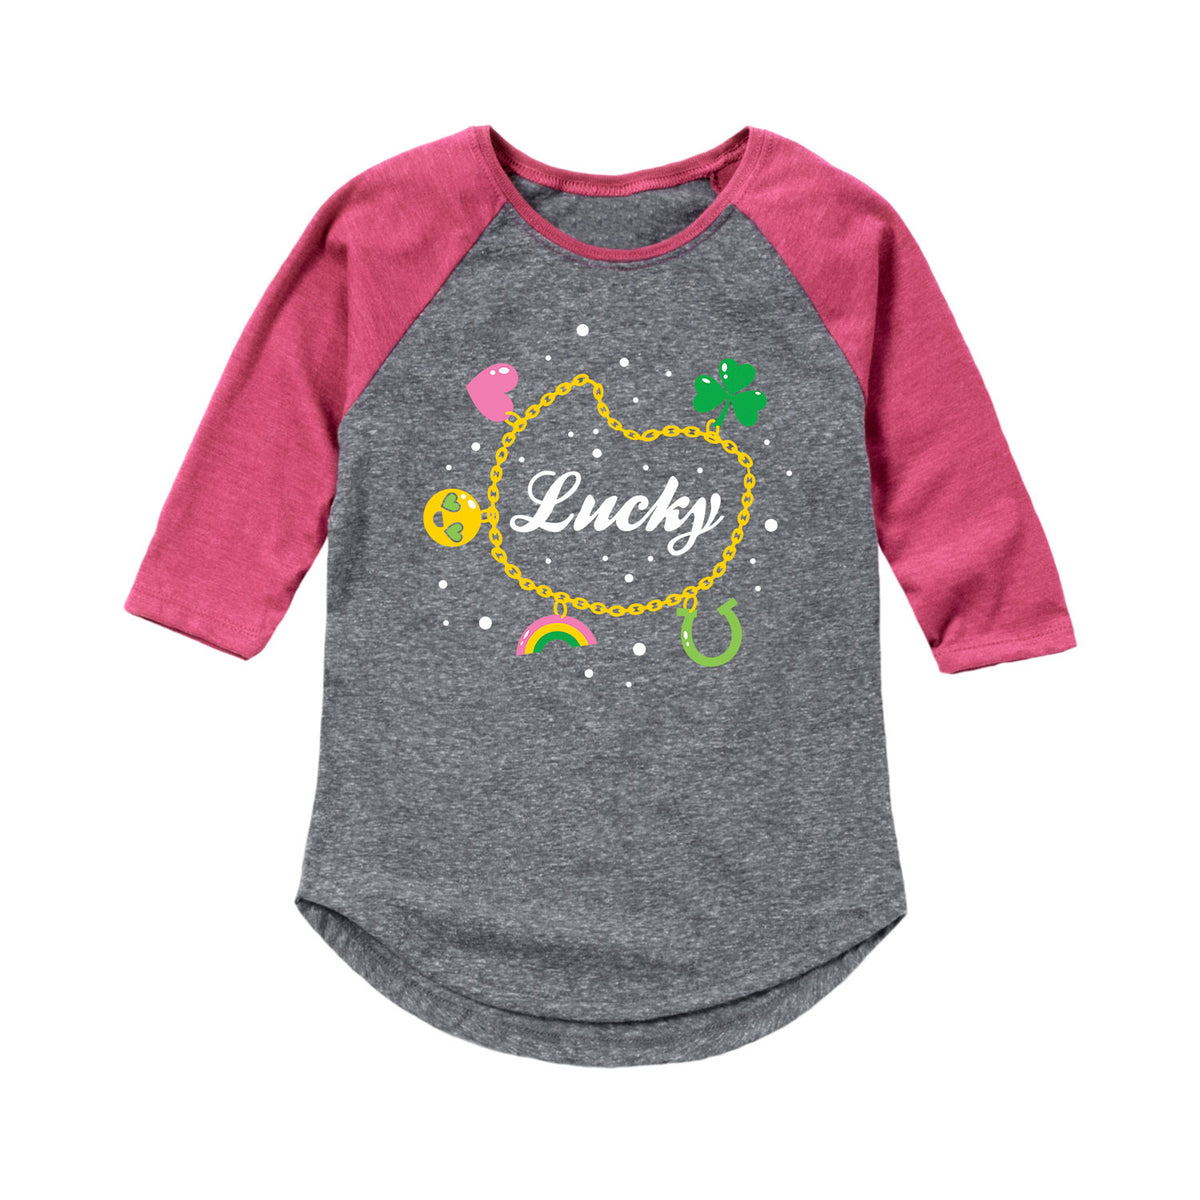 Charm Bracelet - Youth & Toddler Girls Raglan